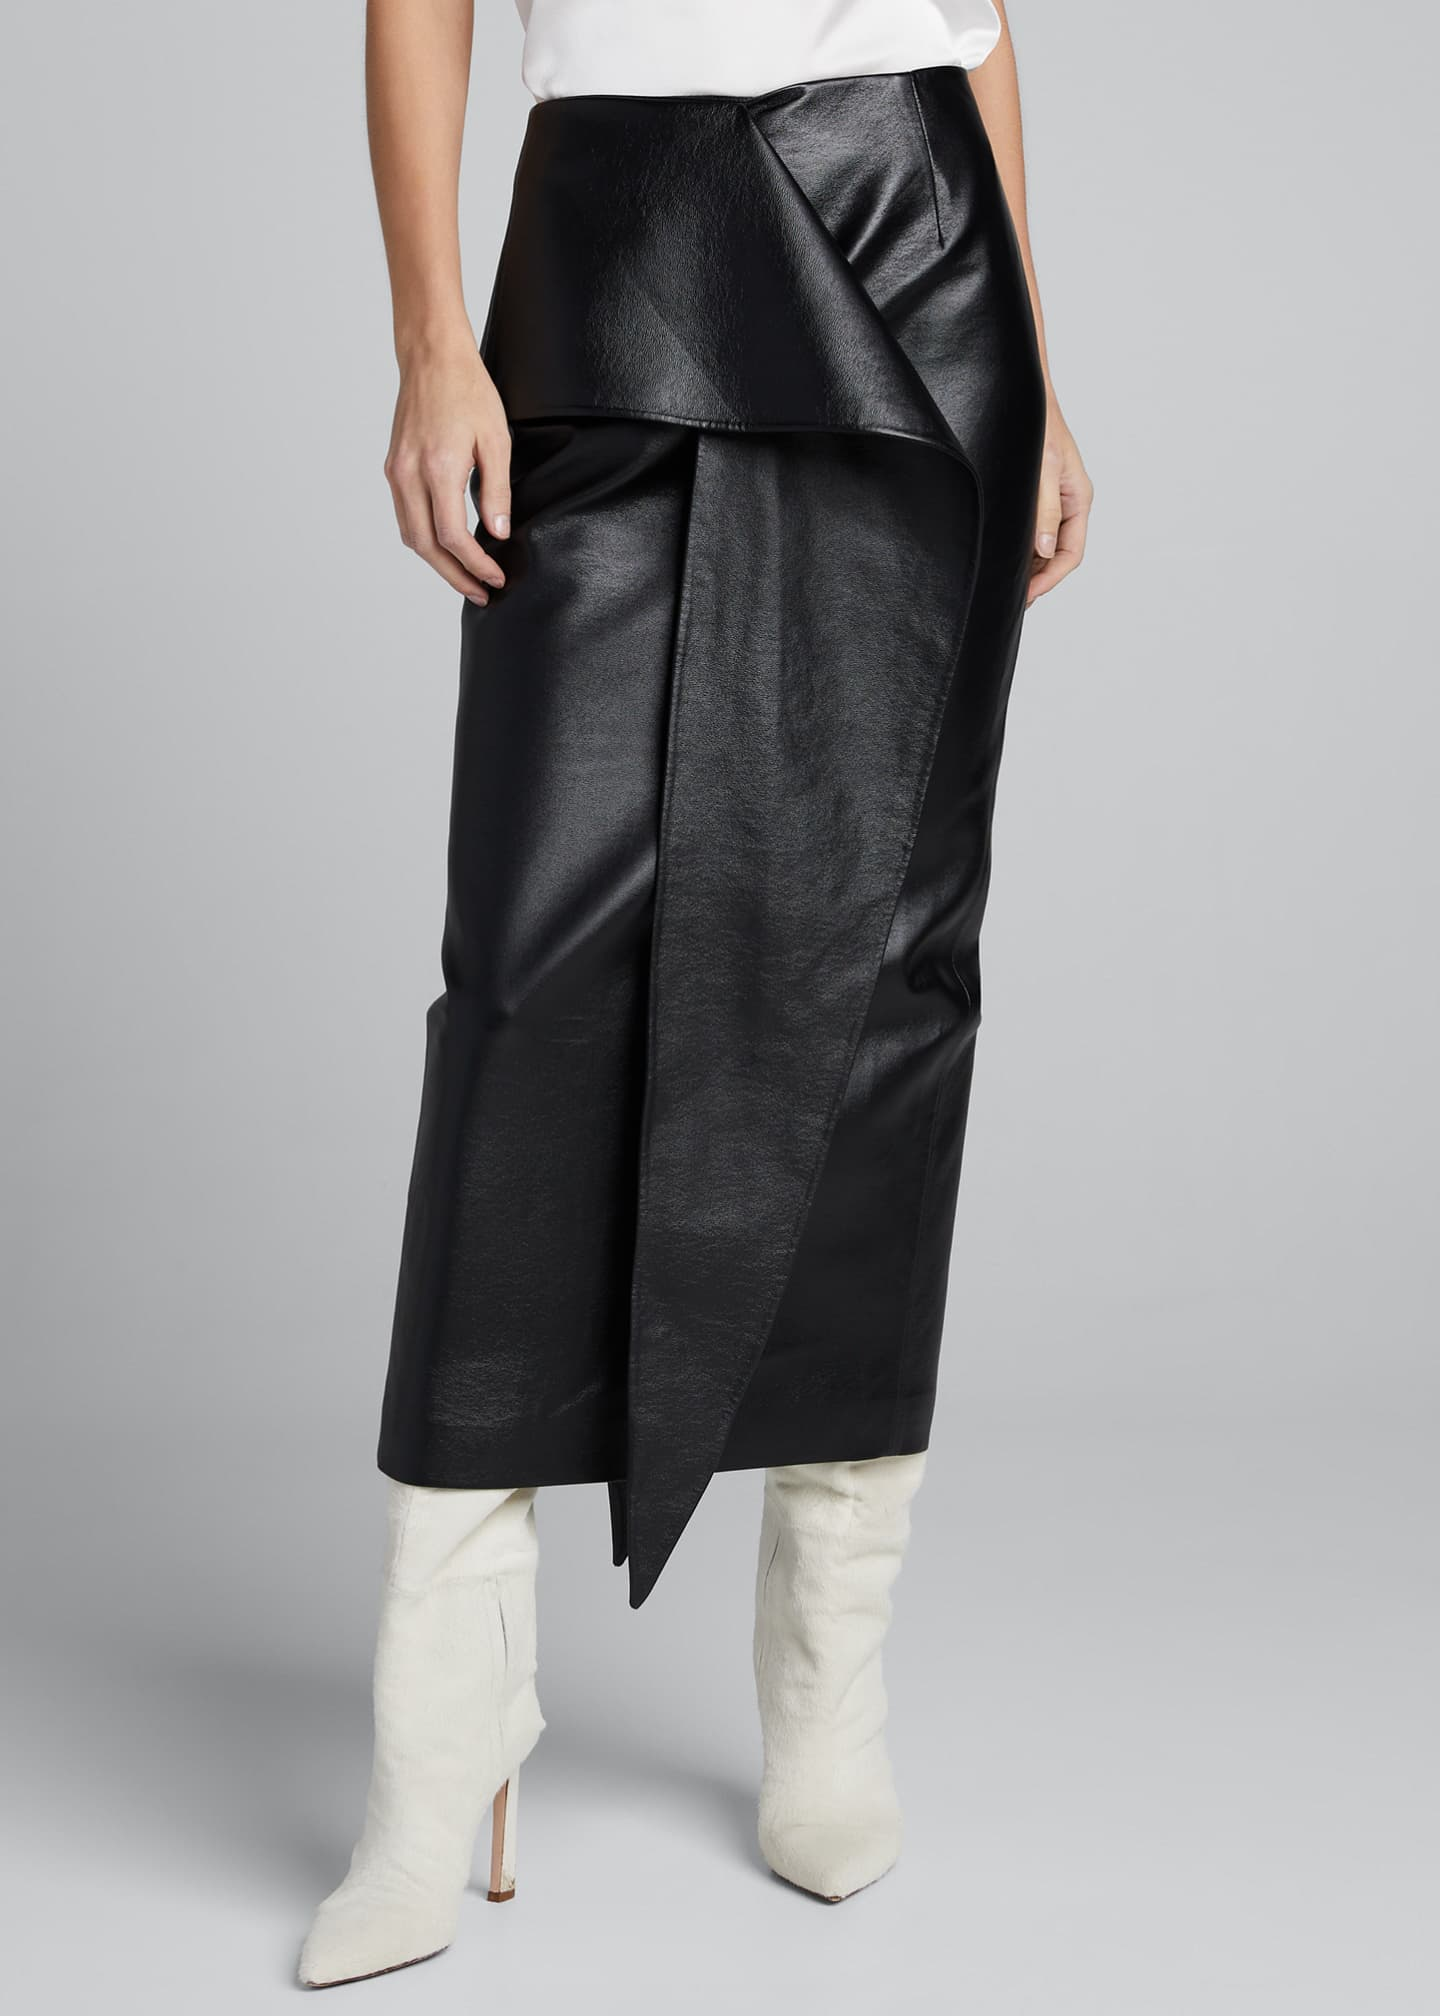 Image 3 of 5: Tie-Waist Faux-Leather Skirt